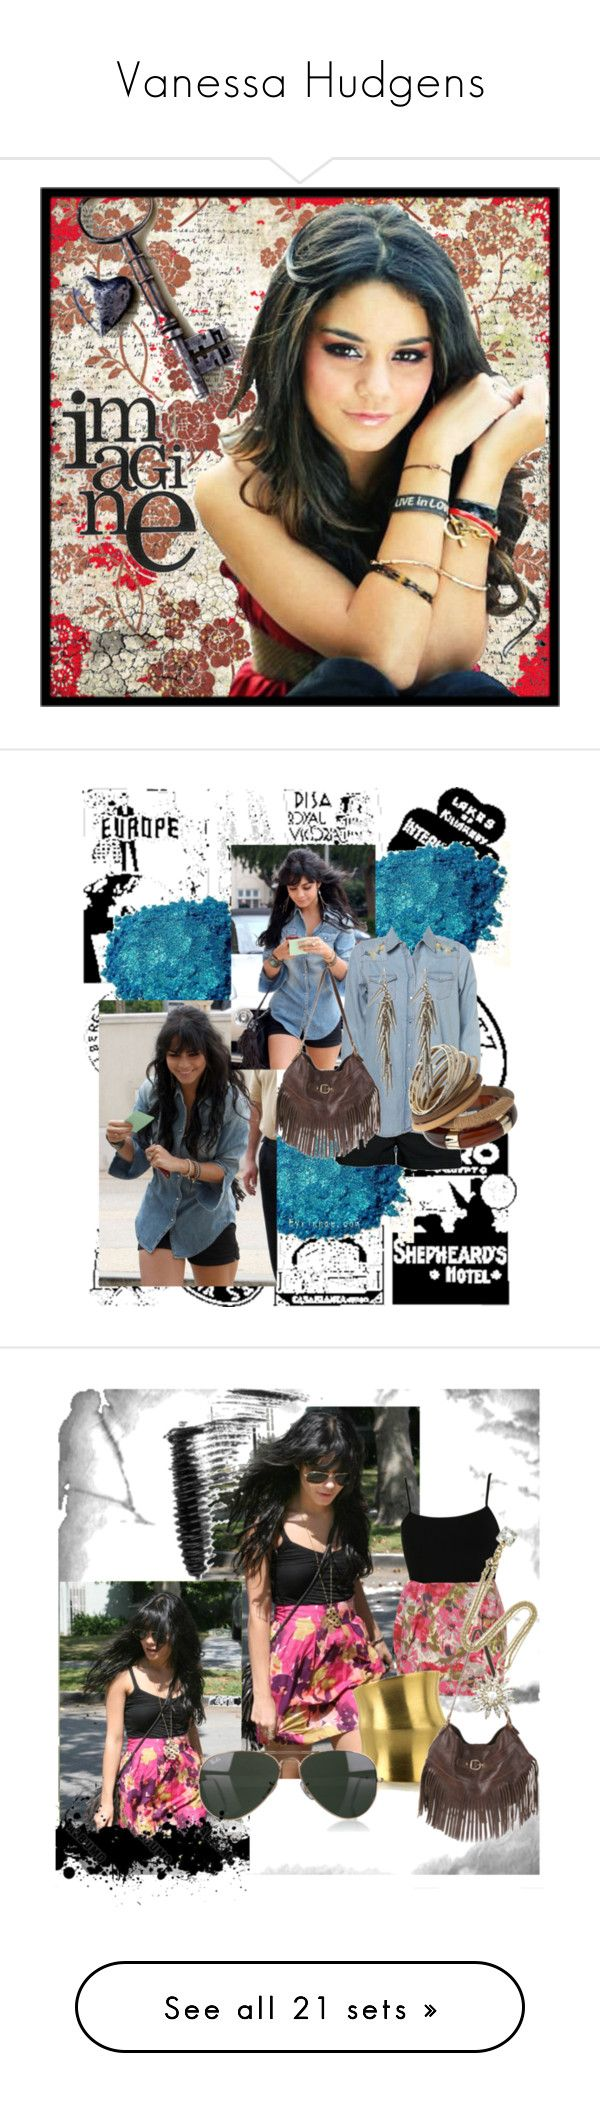 """""""Vanessa Hudgens"""" by slhomzi ❤ liked on Polyvore featuring art, vanessa hudgens, baby v, high school musical, band slam, zac efron, ashley tisdale, suite life of zack and cody, J.J. Winters and Ben-Amun"""